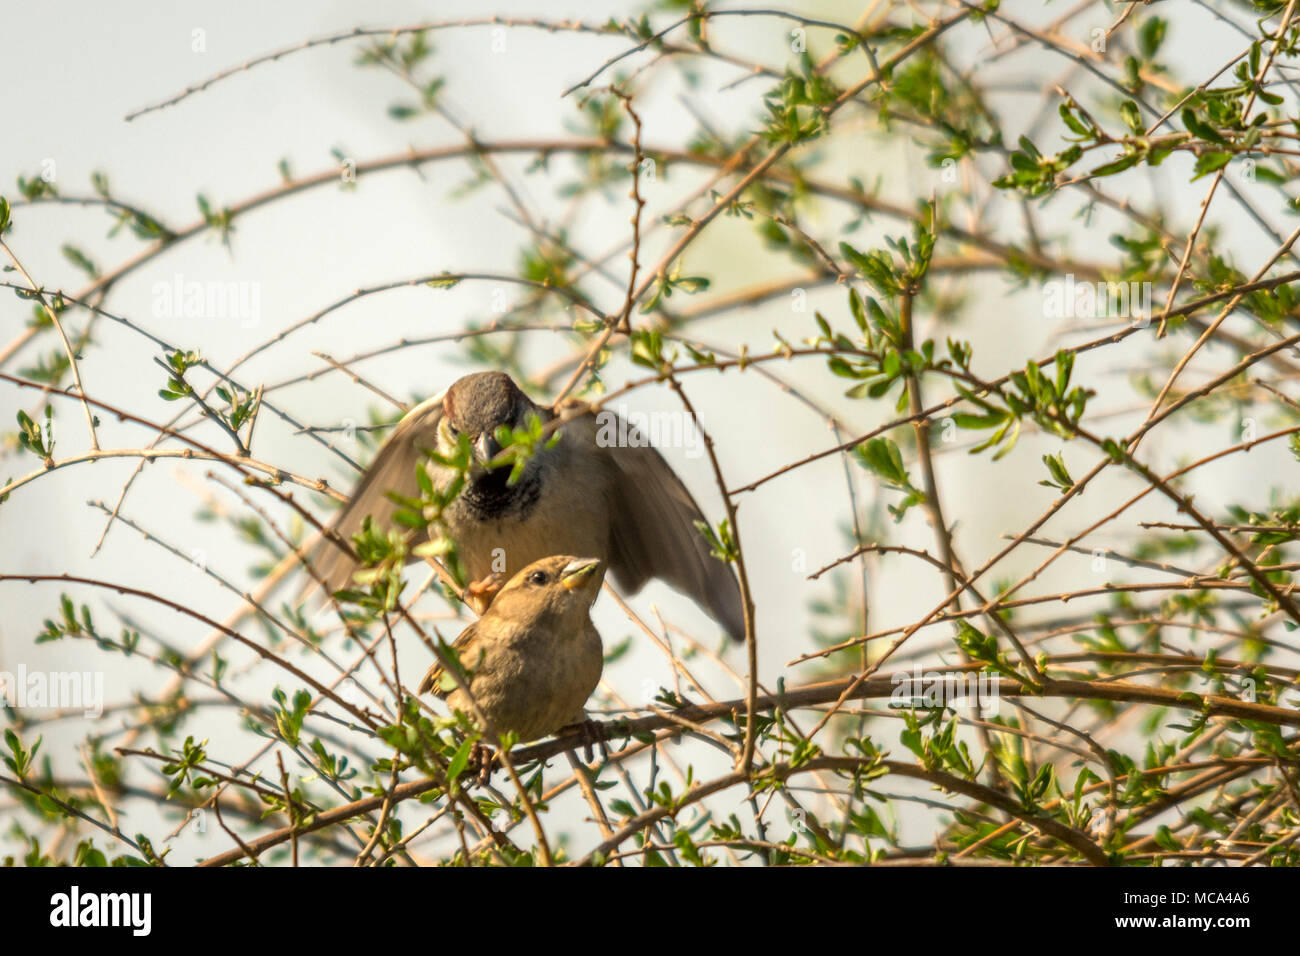 Malomirovo Strandja mountians Bulgaria 14th April 2017: Warm weather after hash winter breeding Sparrow's a sign spring arrived rural with over 400 recorded birds across Bulgaria including endangered species some breed in villages at foothills of the Strandja mountians Bulgaria Clifford Norton Alamy  Live News. - Stock Image